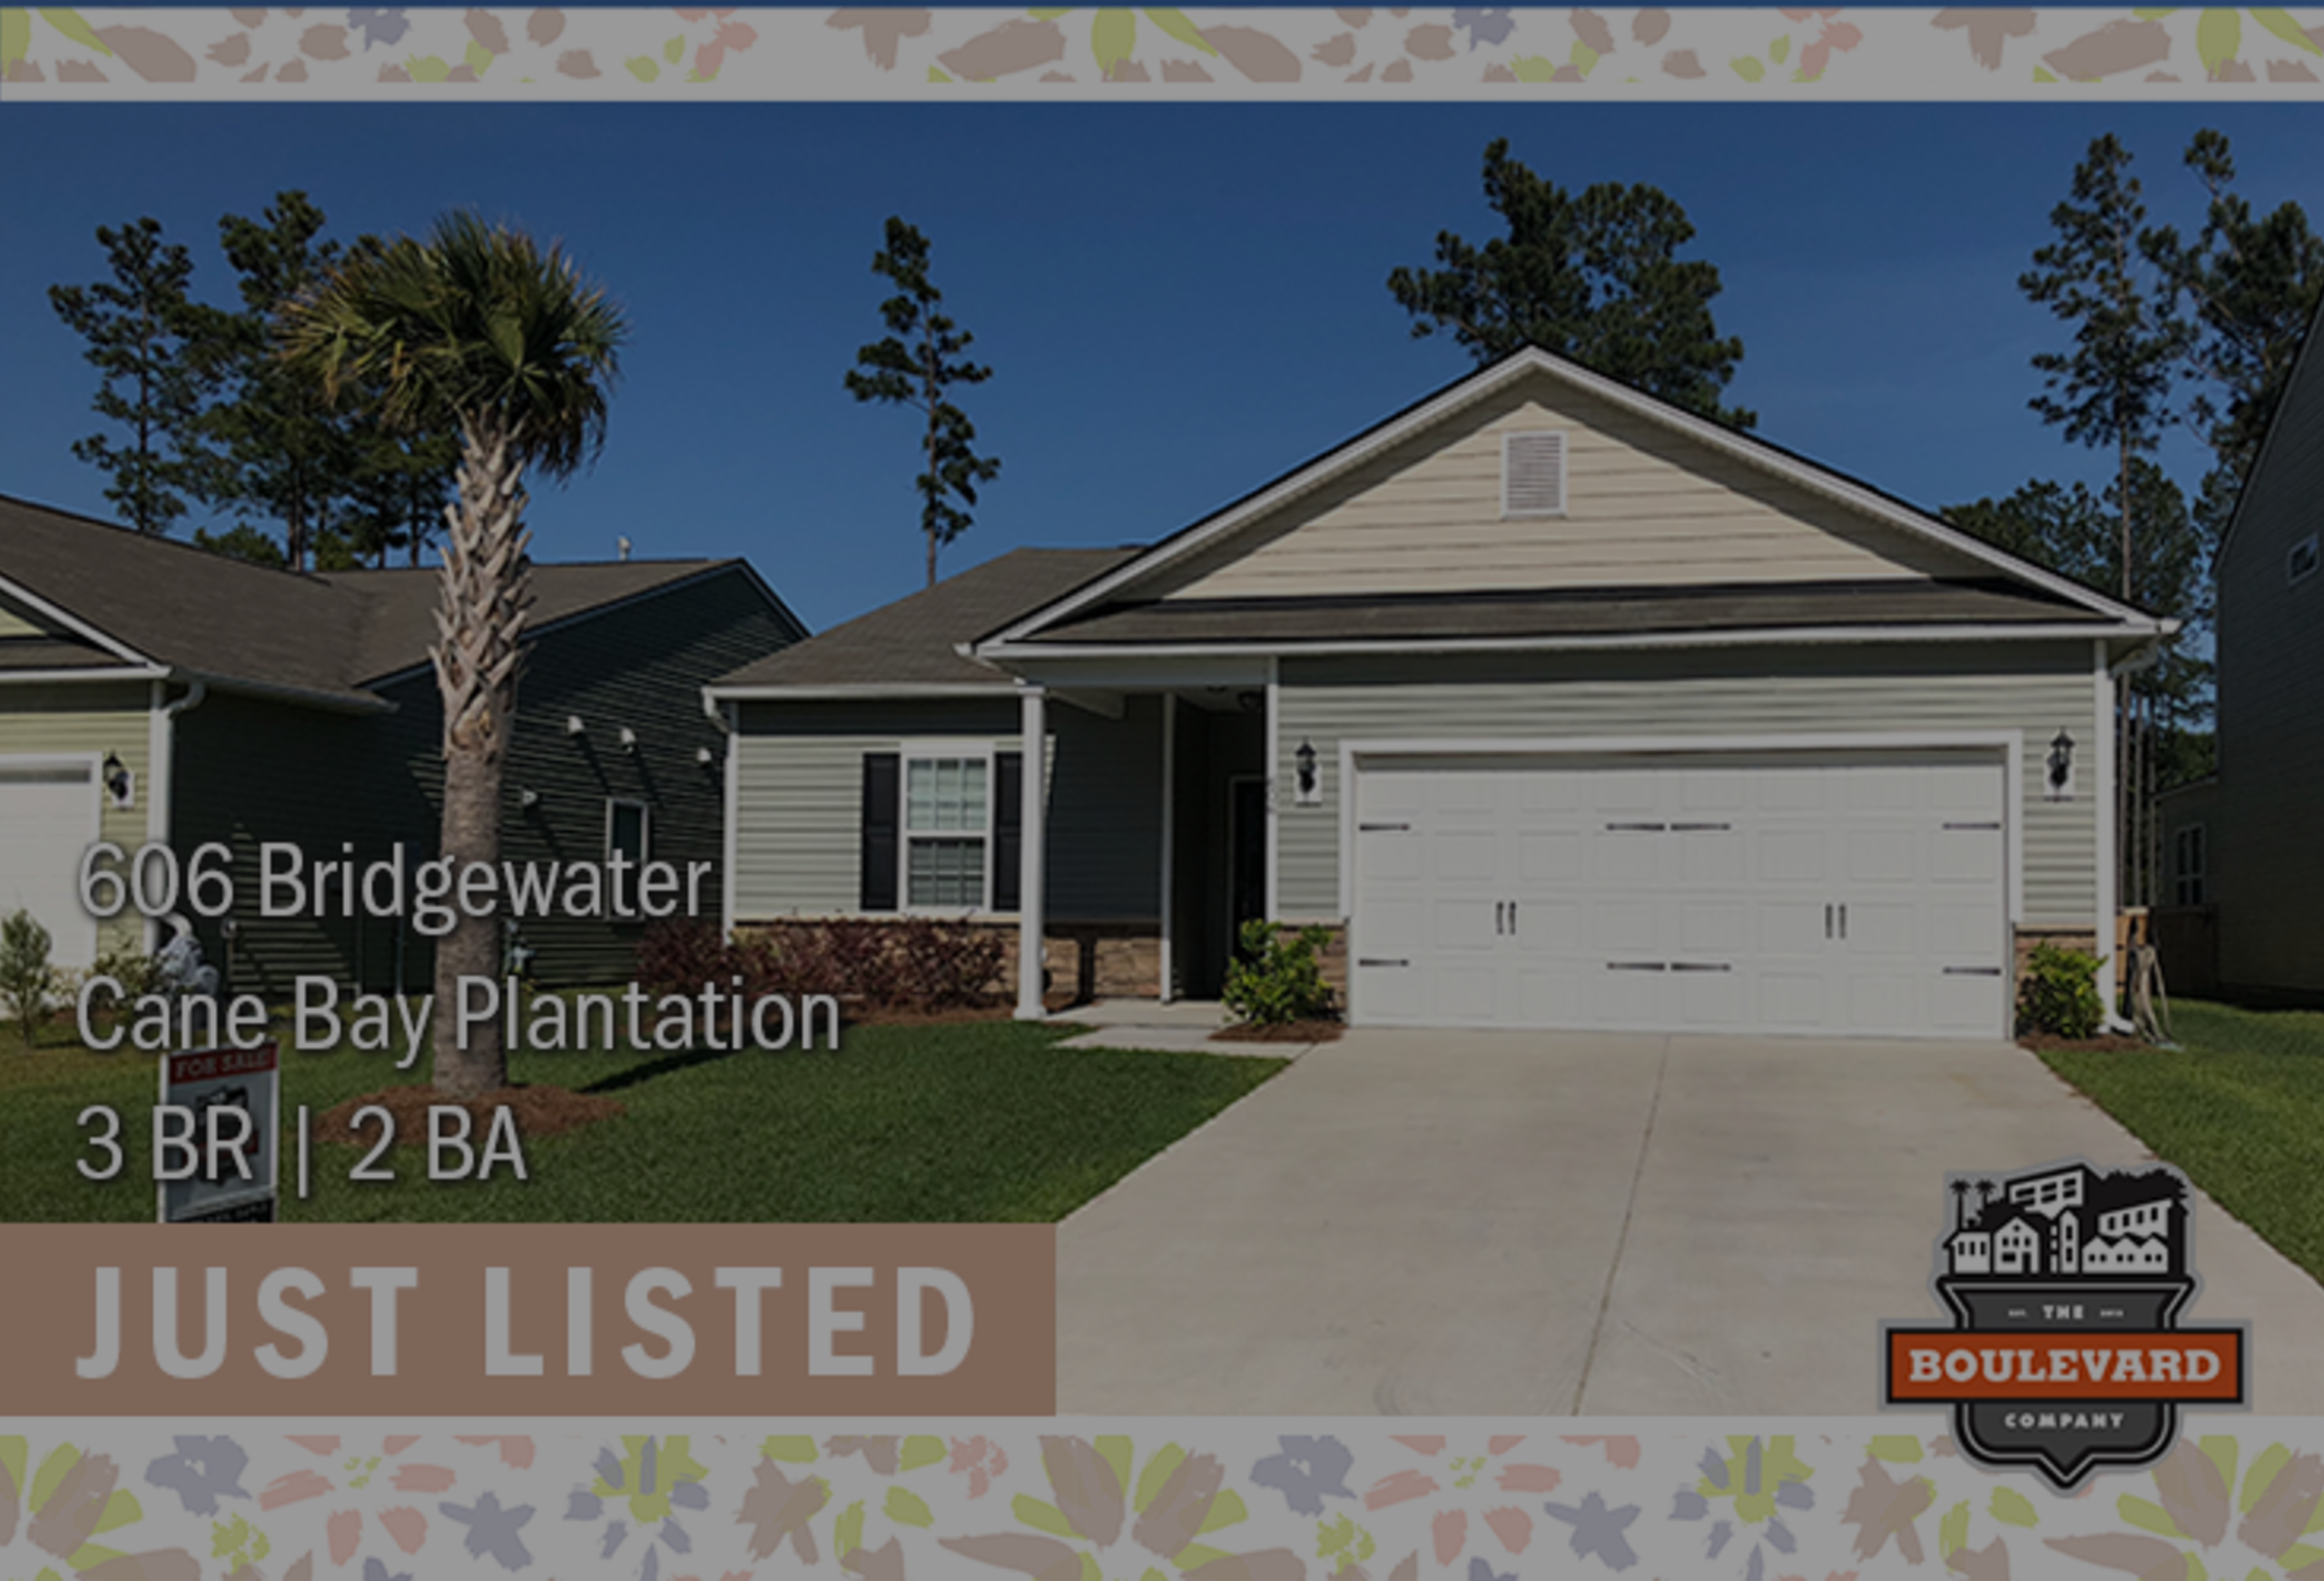 new listing: 606 Bridgewater Court in Cane Bay Plantation